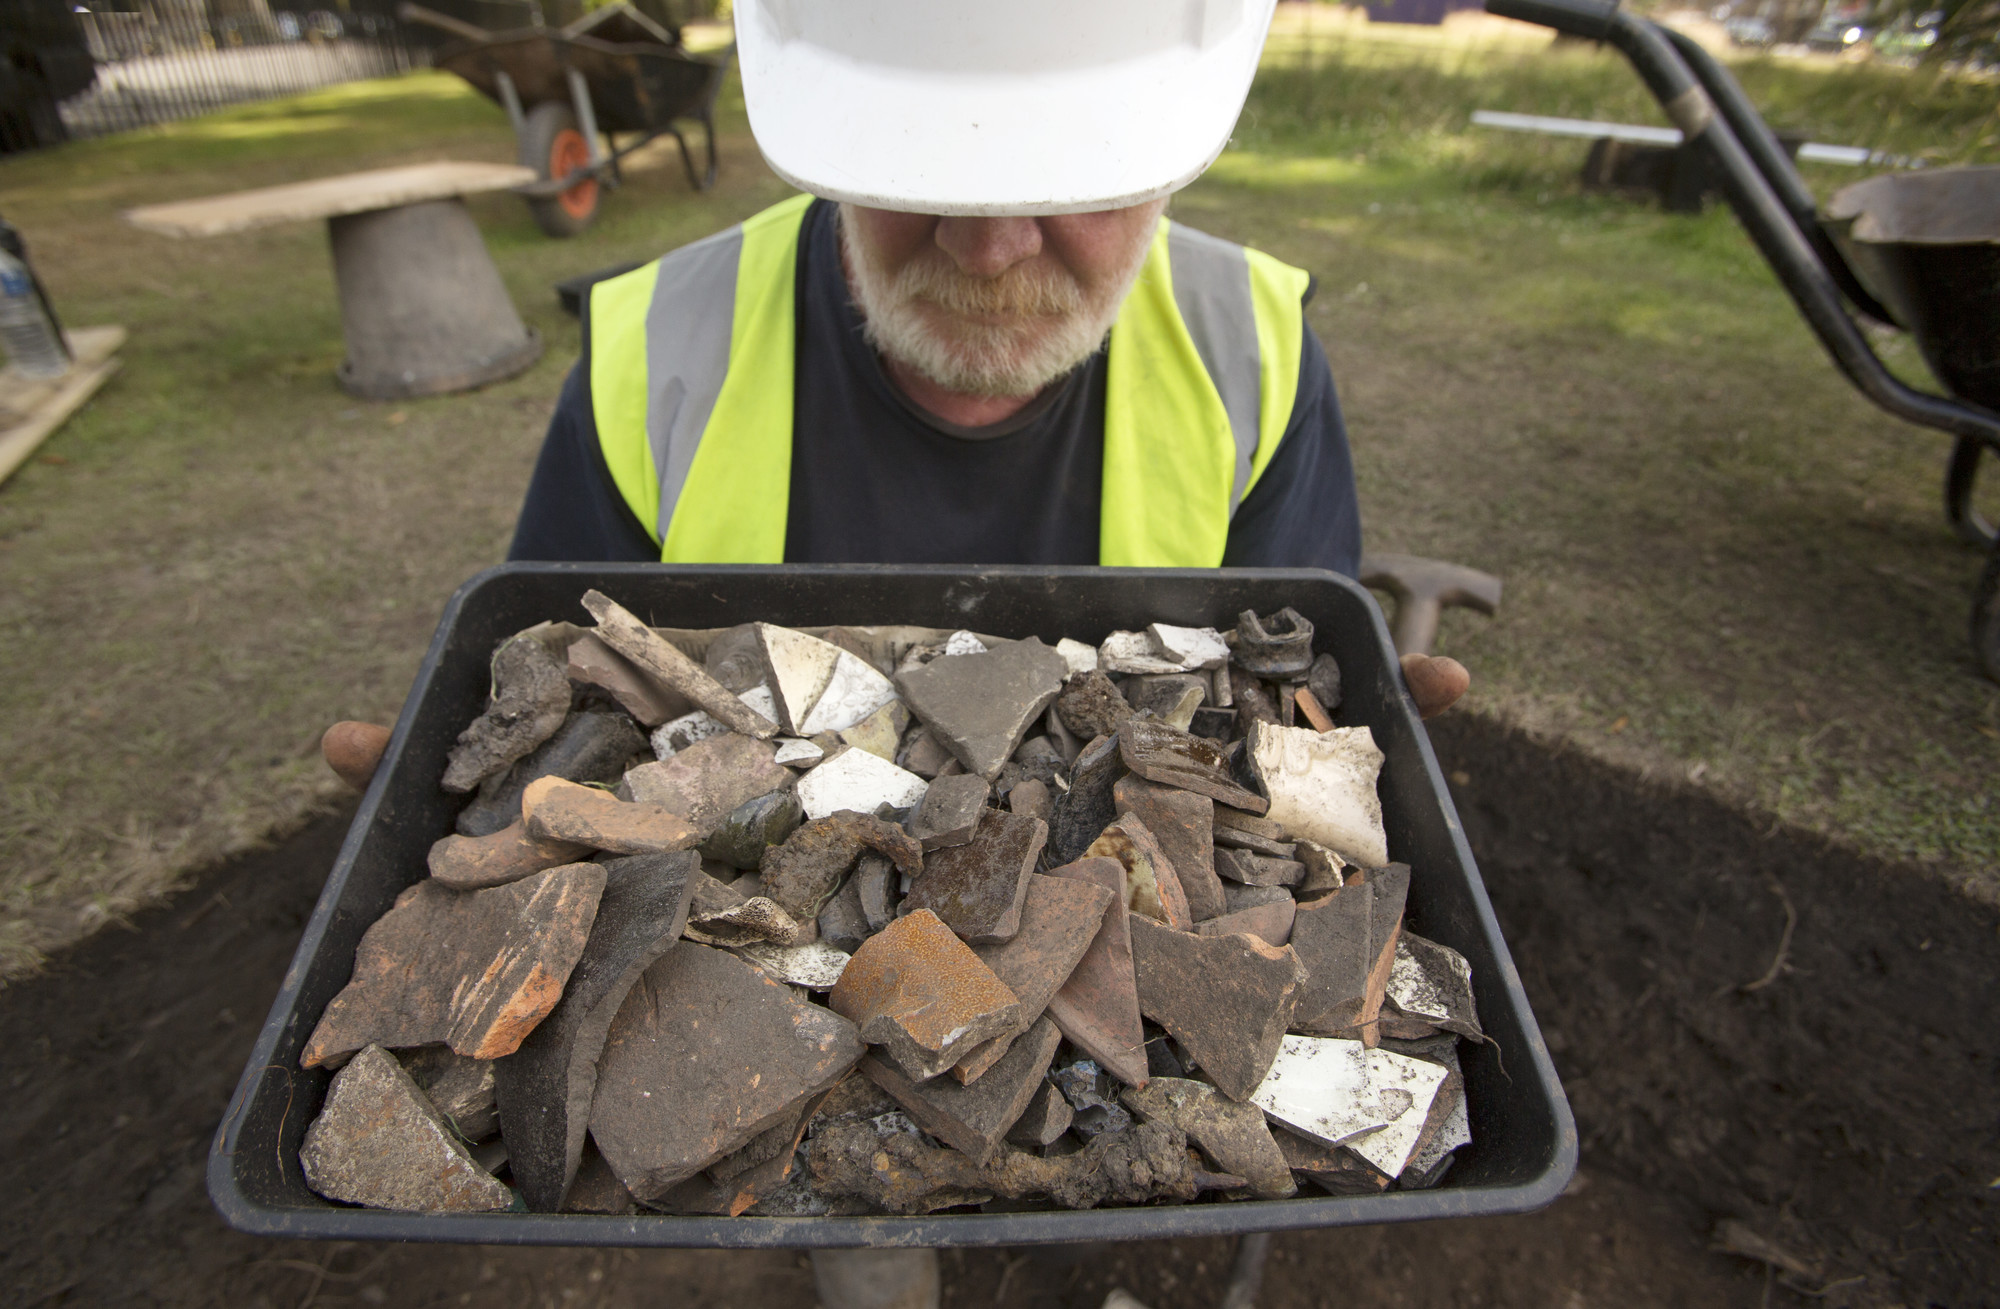 Excavations at the Palace of Holyroodhouse